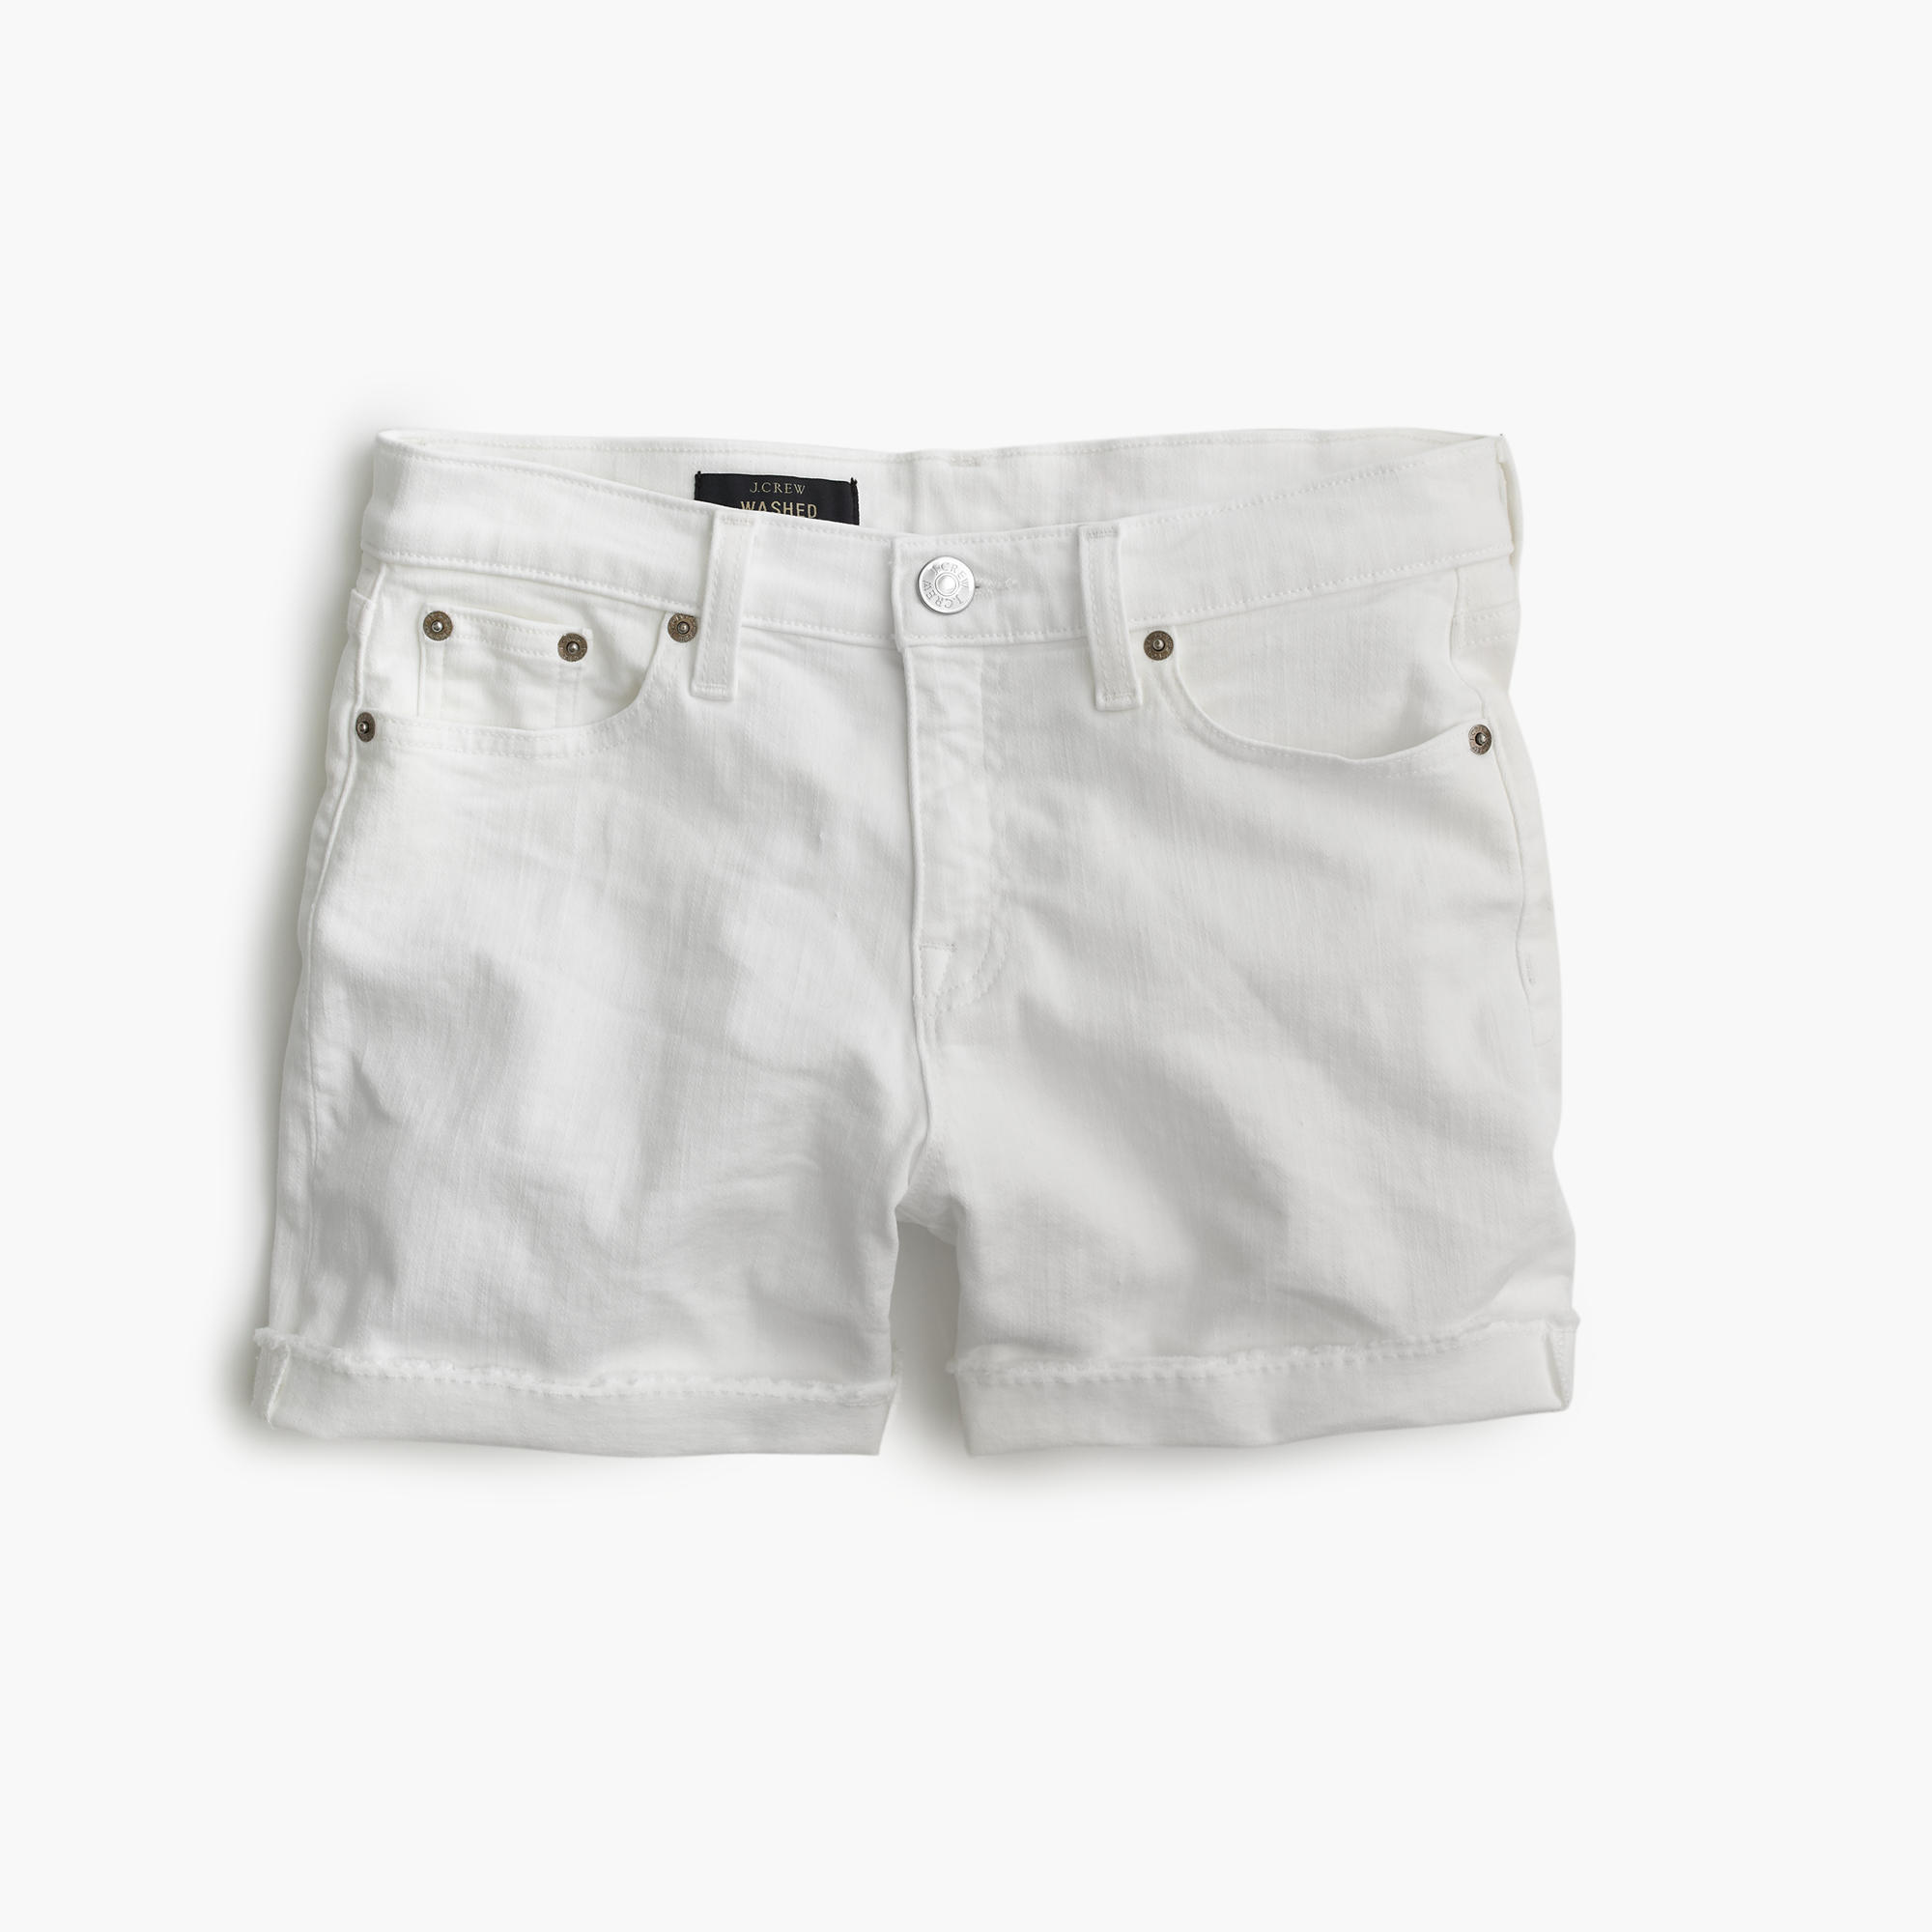 Denim Short In White : Women's Shorts | J.Crew